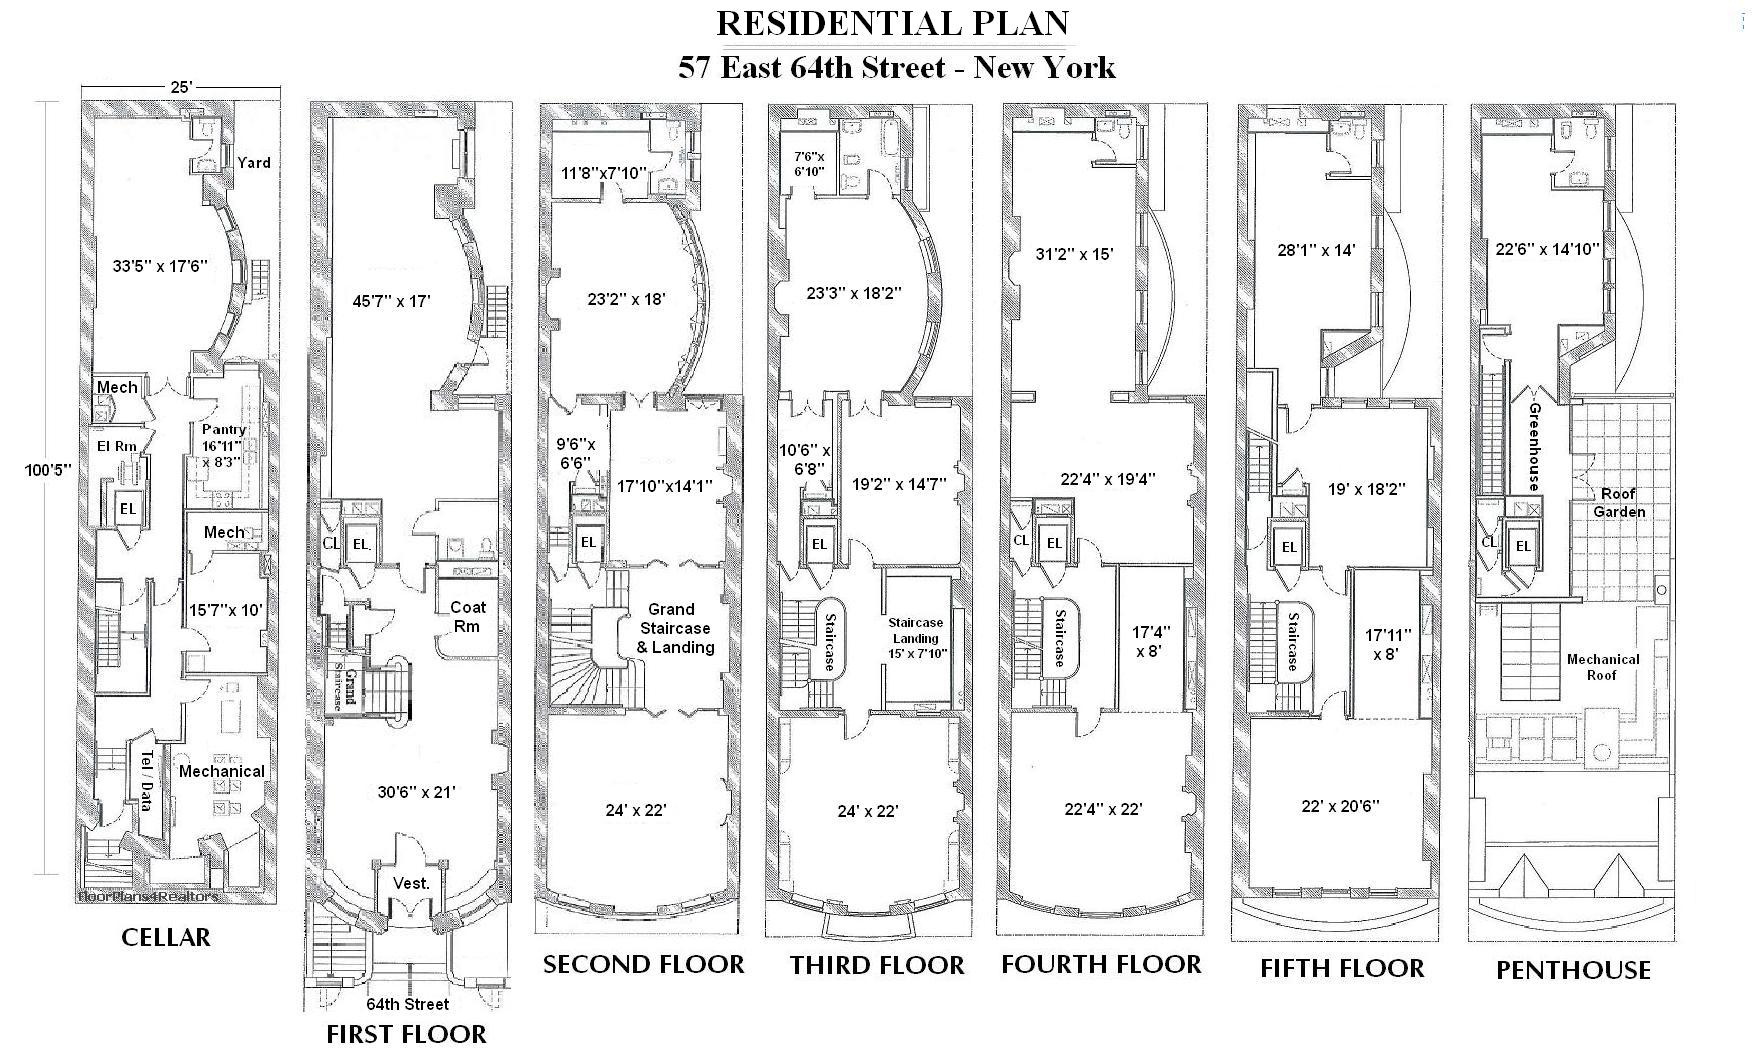 StreetEasy: 57 East 64th St. - Rental Apartment Rental in Lenox Hill, Manhattan